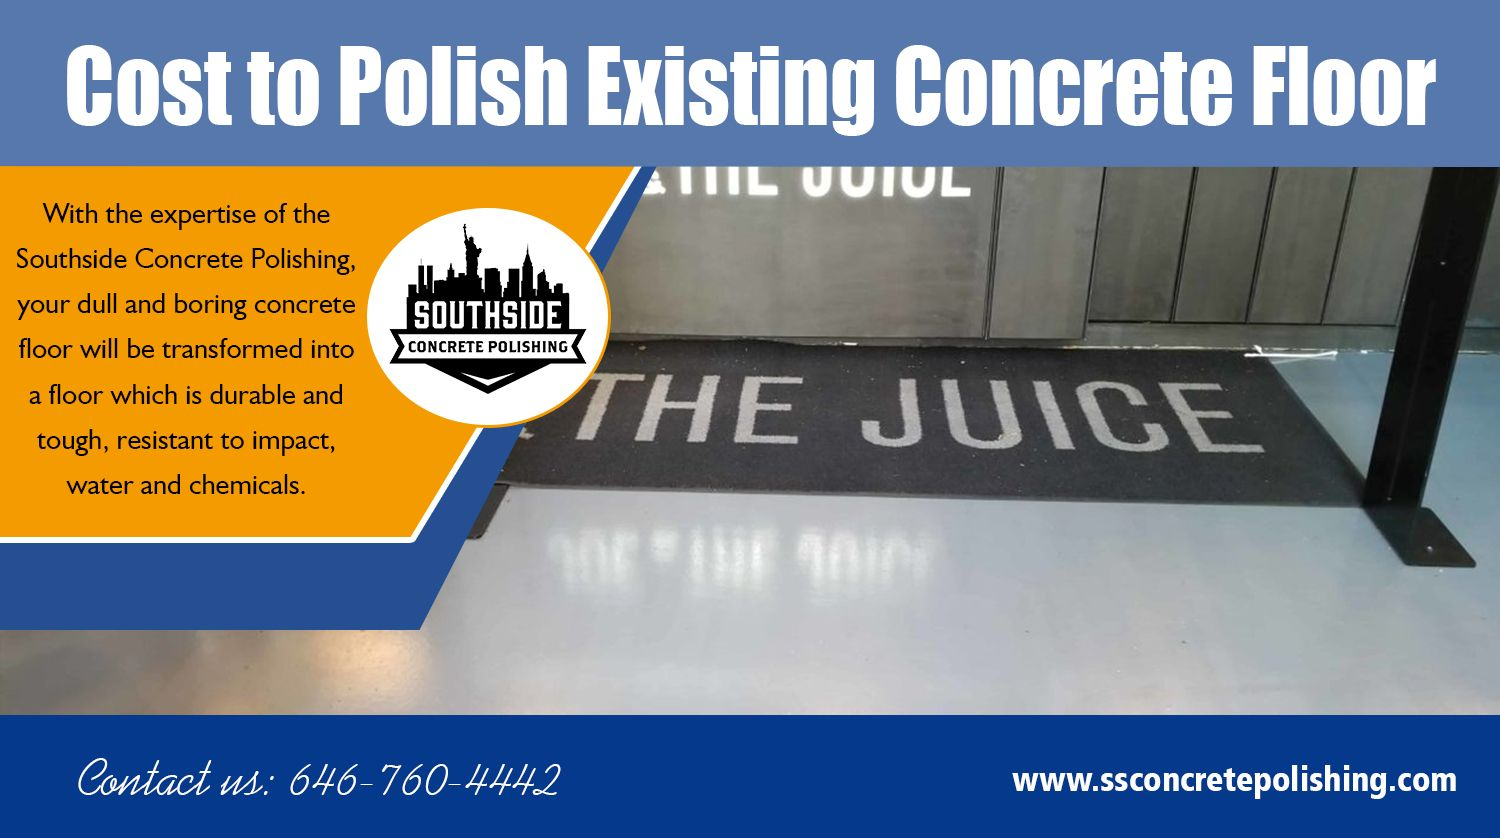 Professional Cost To Polish Existing Concrete Floor Will Save Your Time And Money Concrete Floors Concrete Epoxy Floor